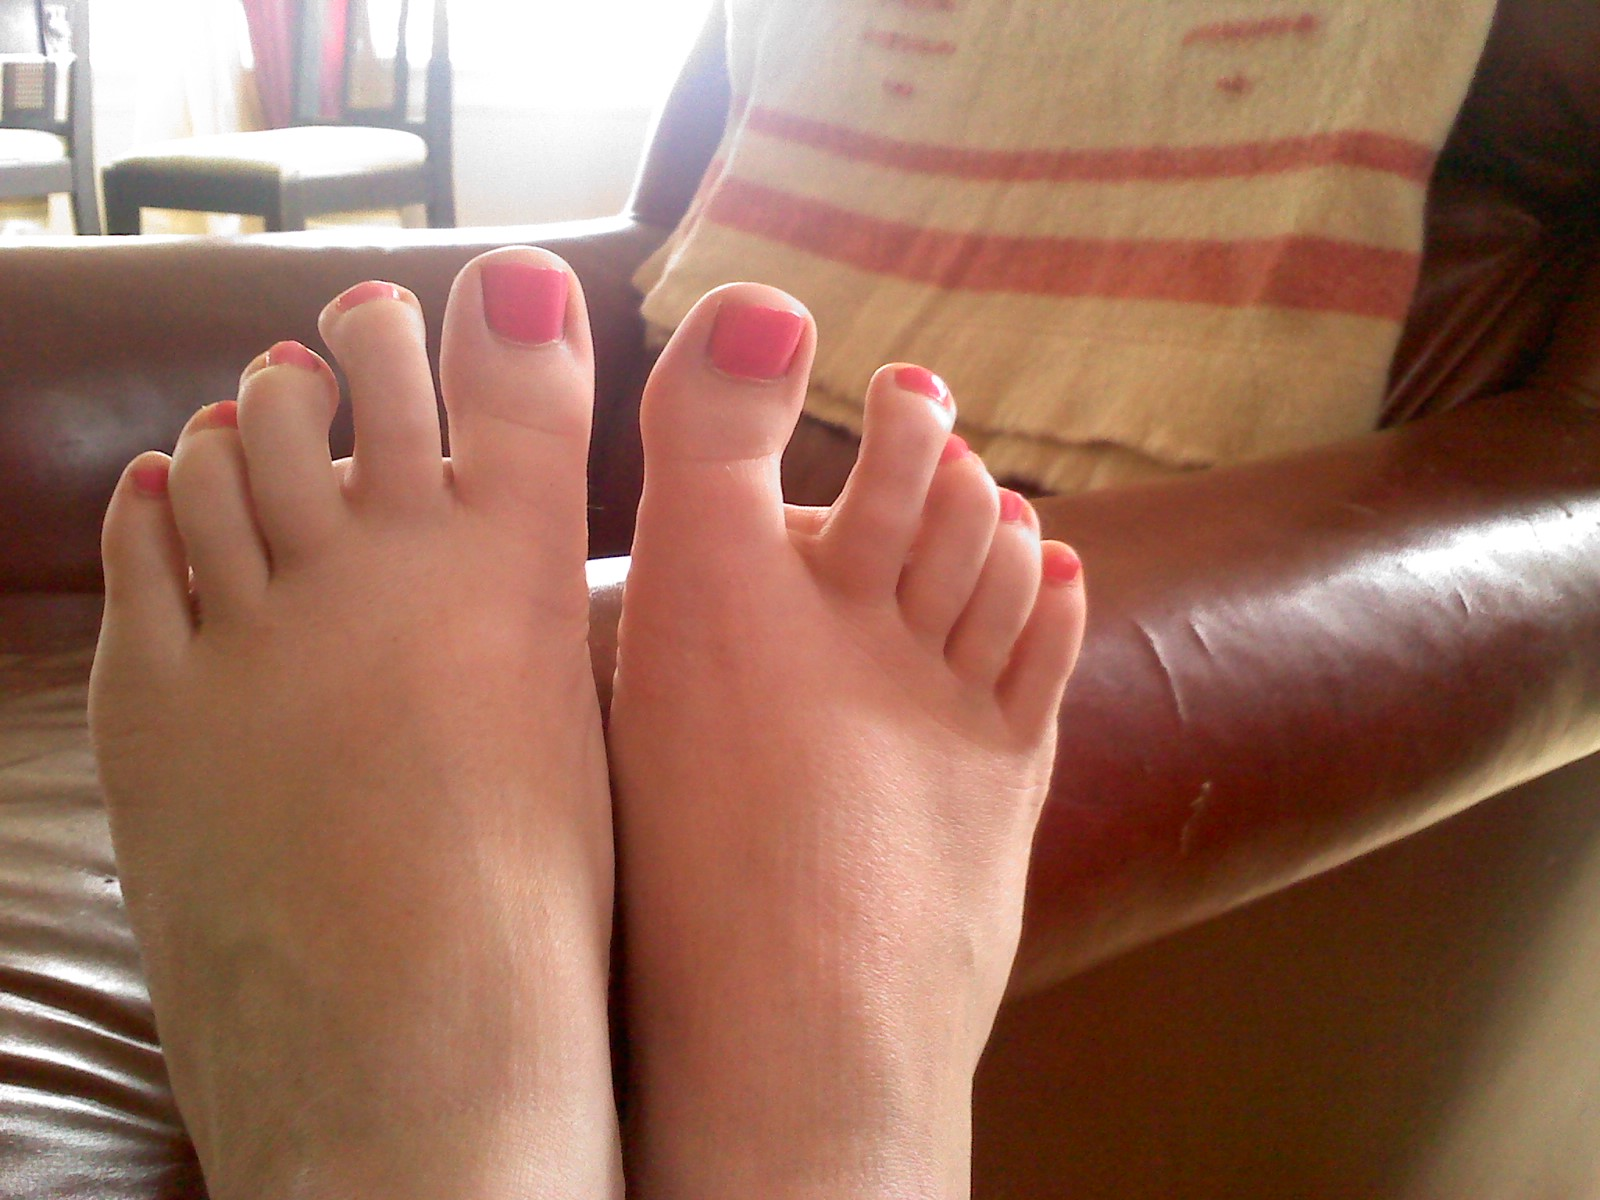 Painted teen feet